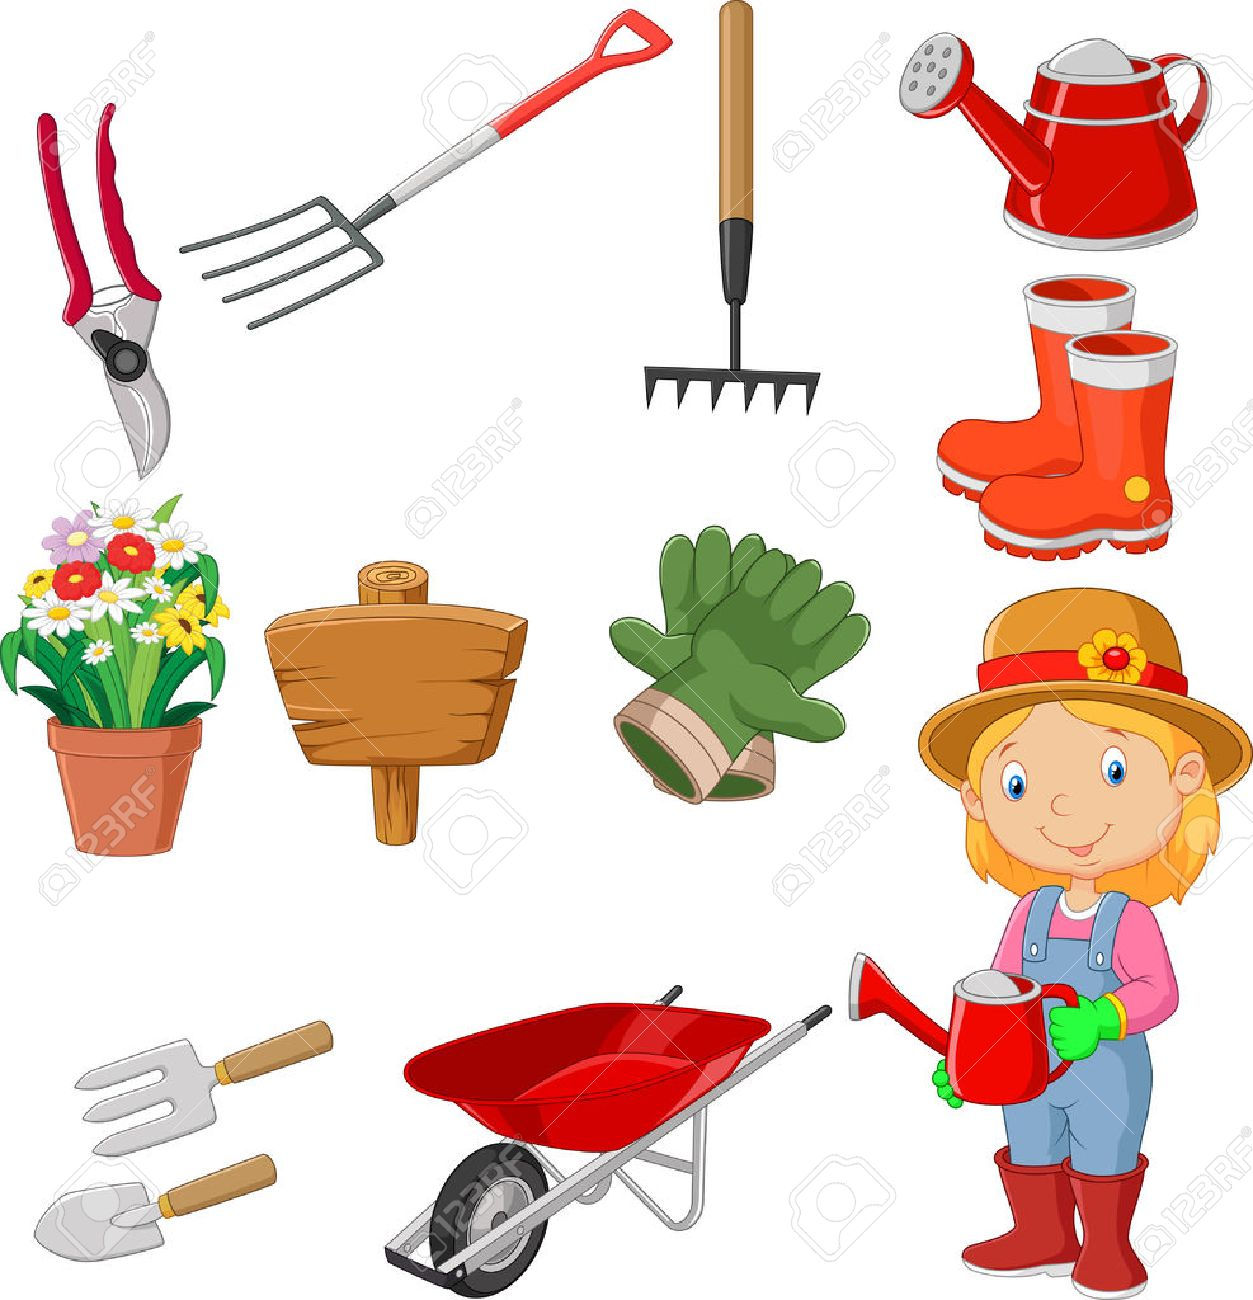 Cartoon Gardening Tools Collection Set Royalty Free Cliparts